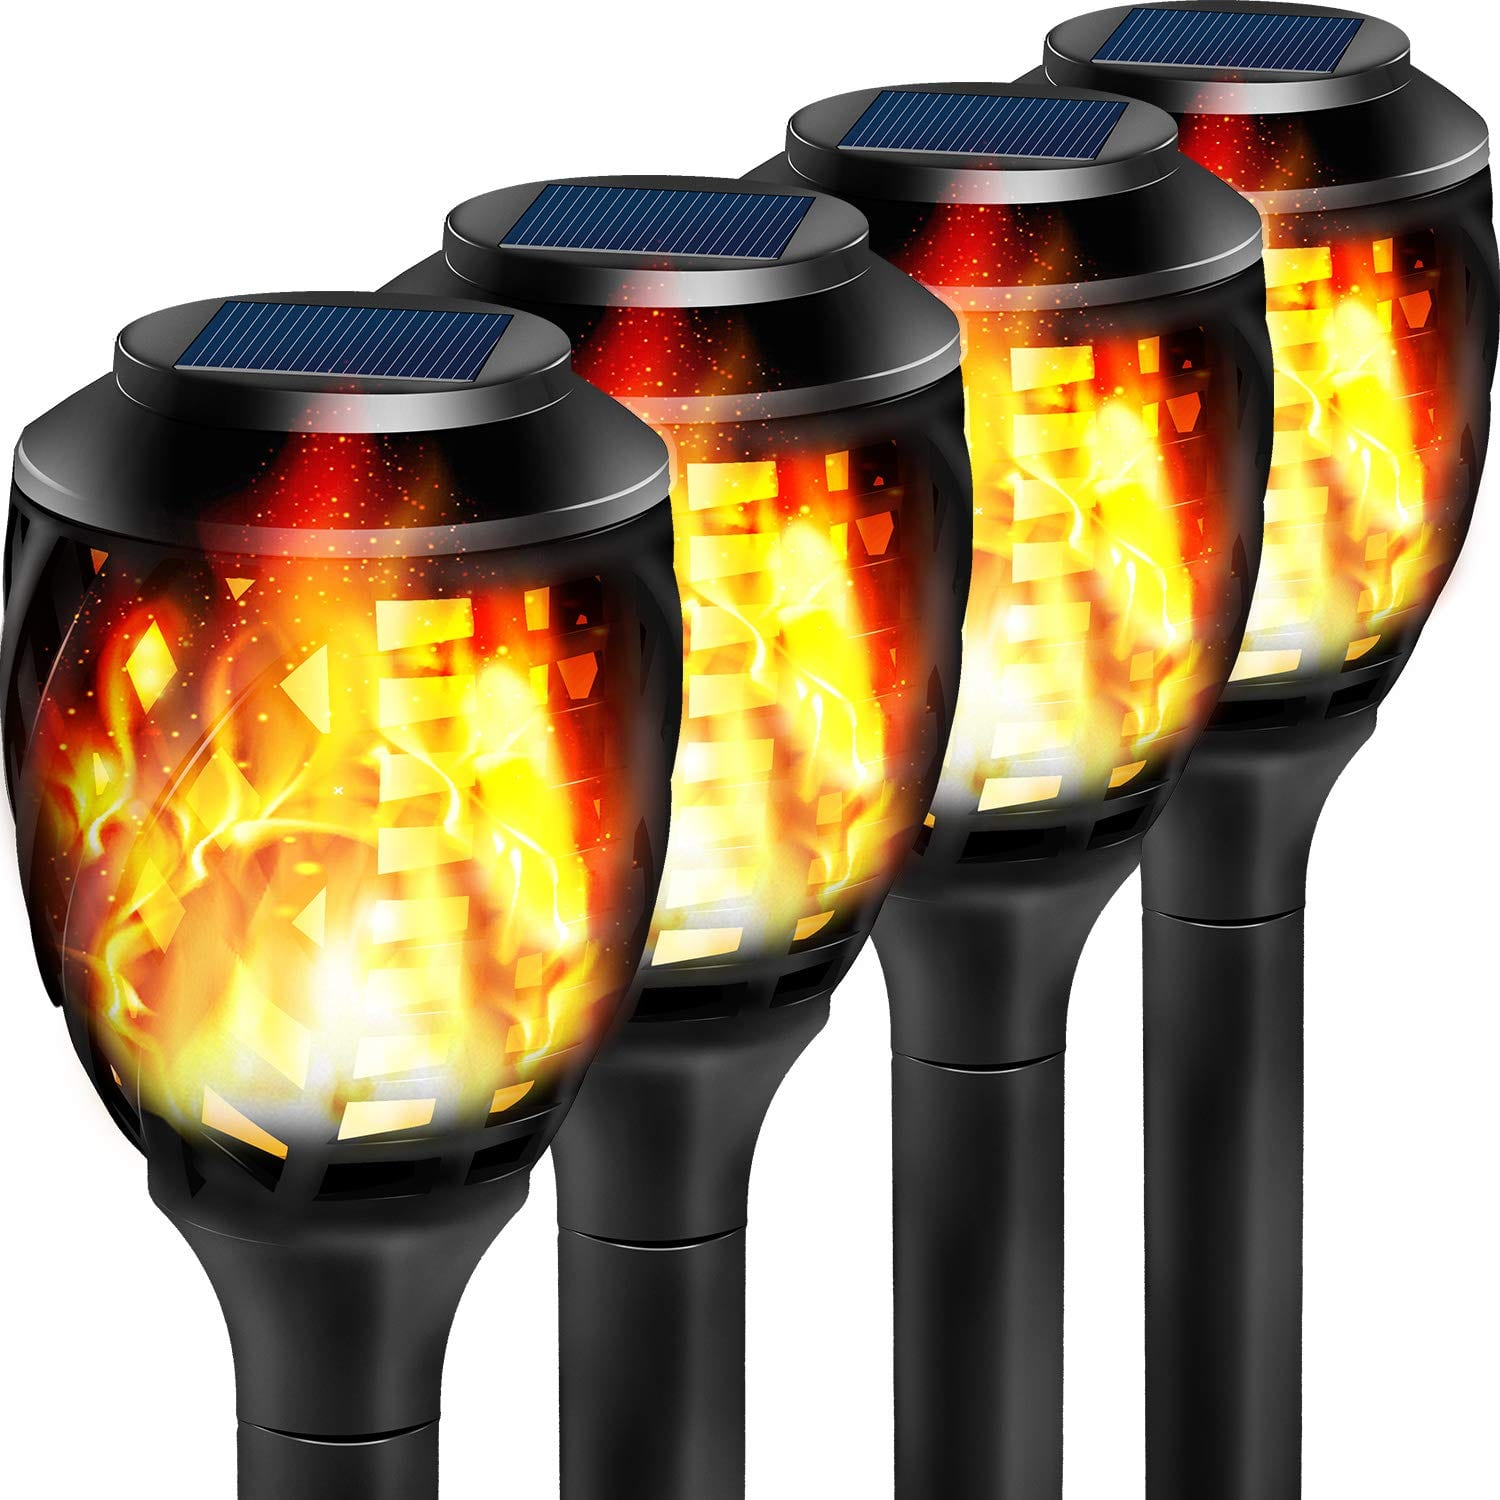 Grand Patio Solar Lights Upgraded Waterproof Flickering Flames Security Torch Light Outdoor Solar Spotlights Landscape Decoration Dusk to Dawn, Amazon 40% off $14.99 to $41.99